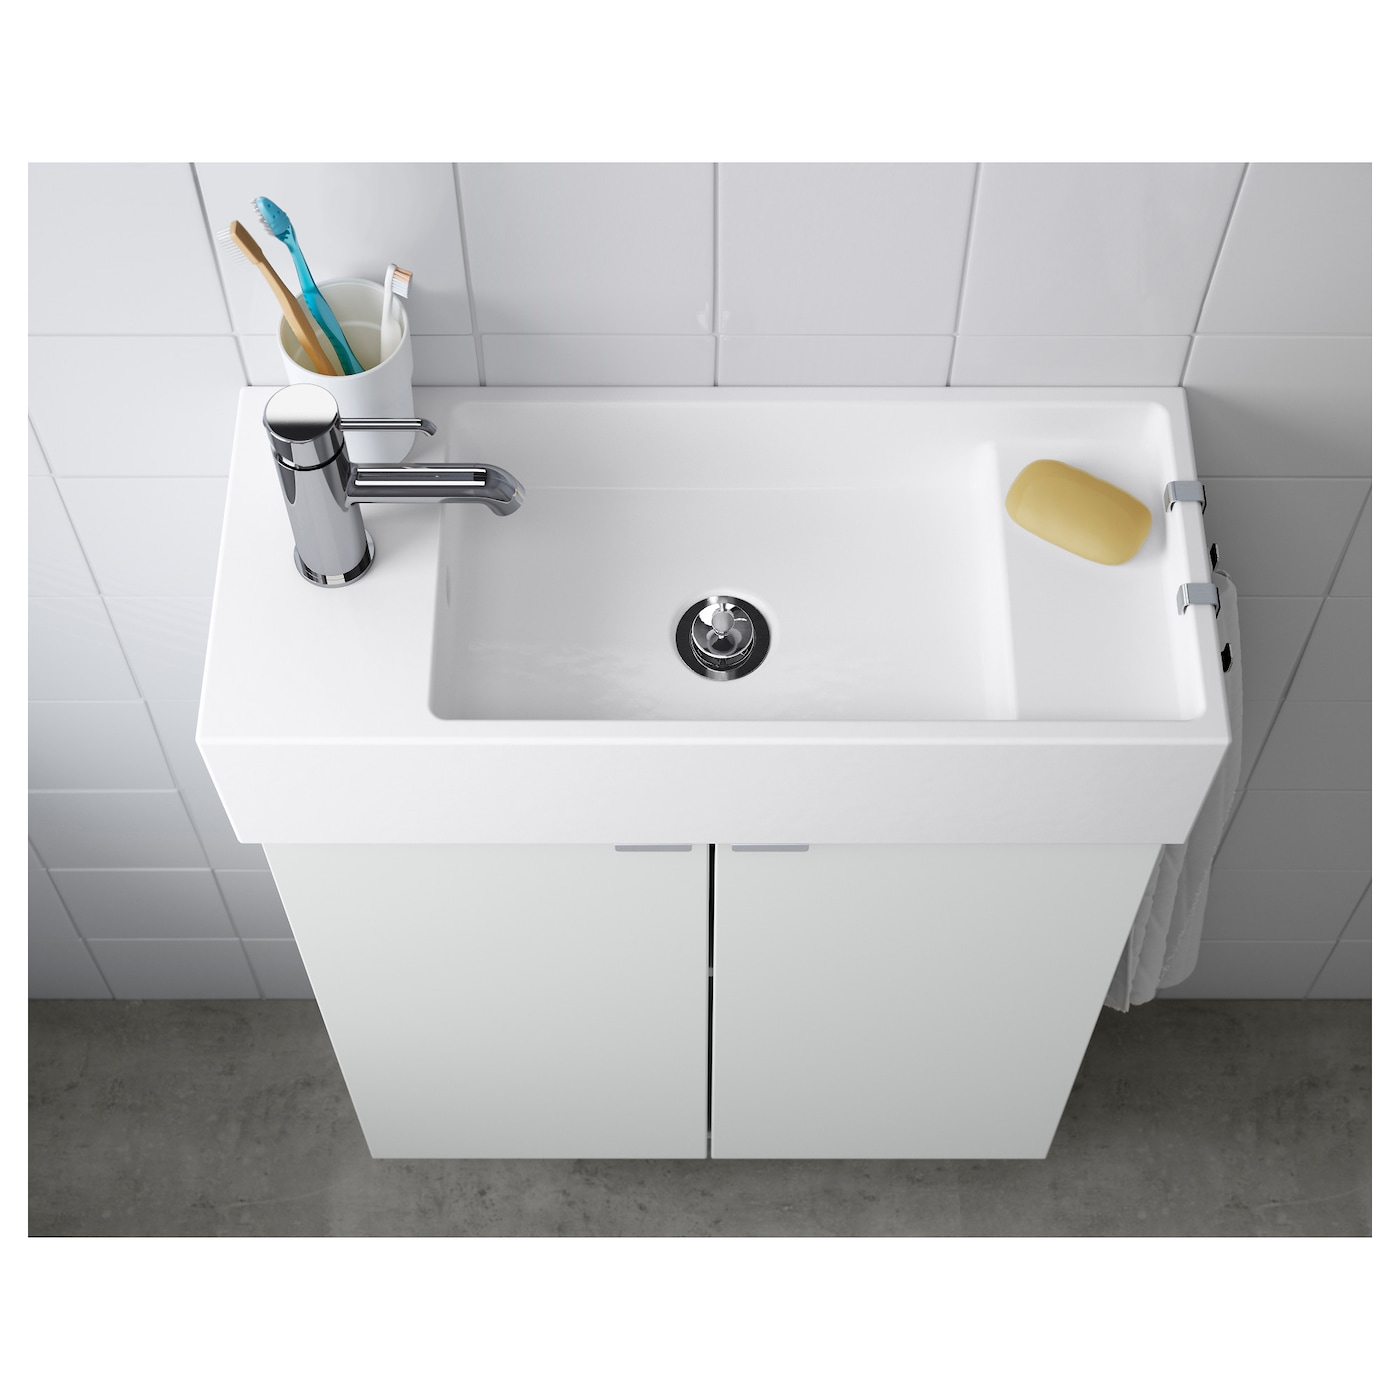 Ikea LillÅngen Single Wash Basin 10 Year Guarantee Read About The Terms In